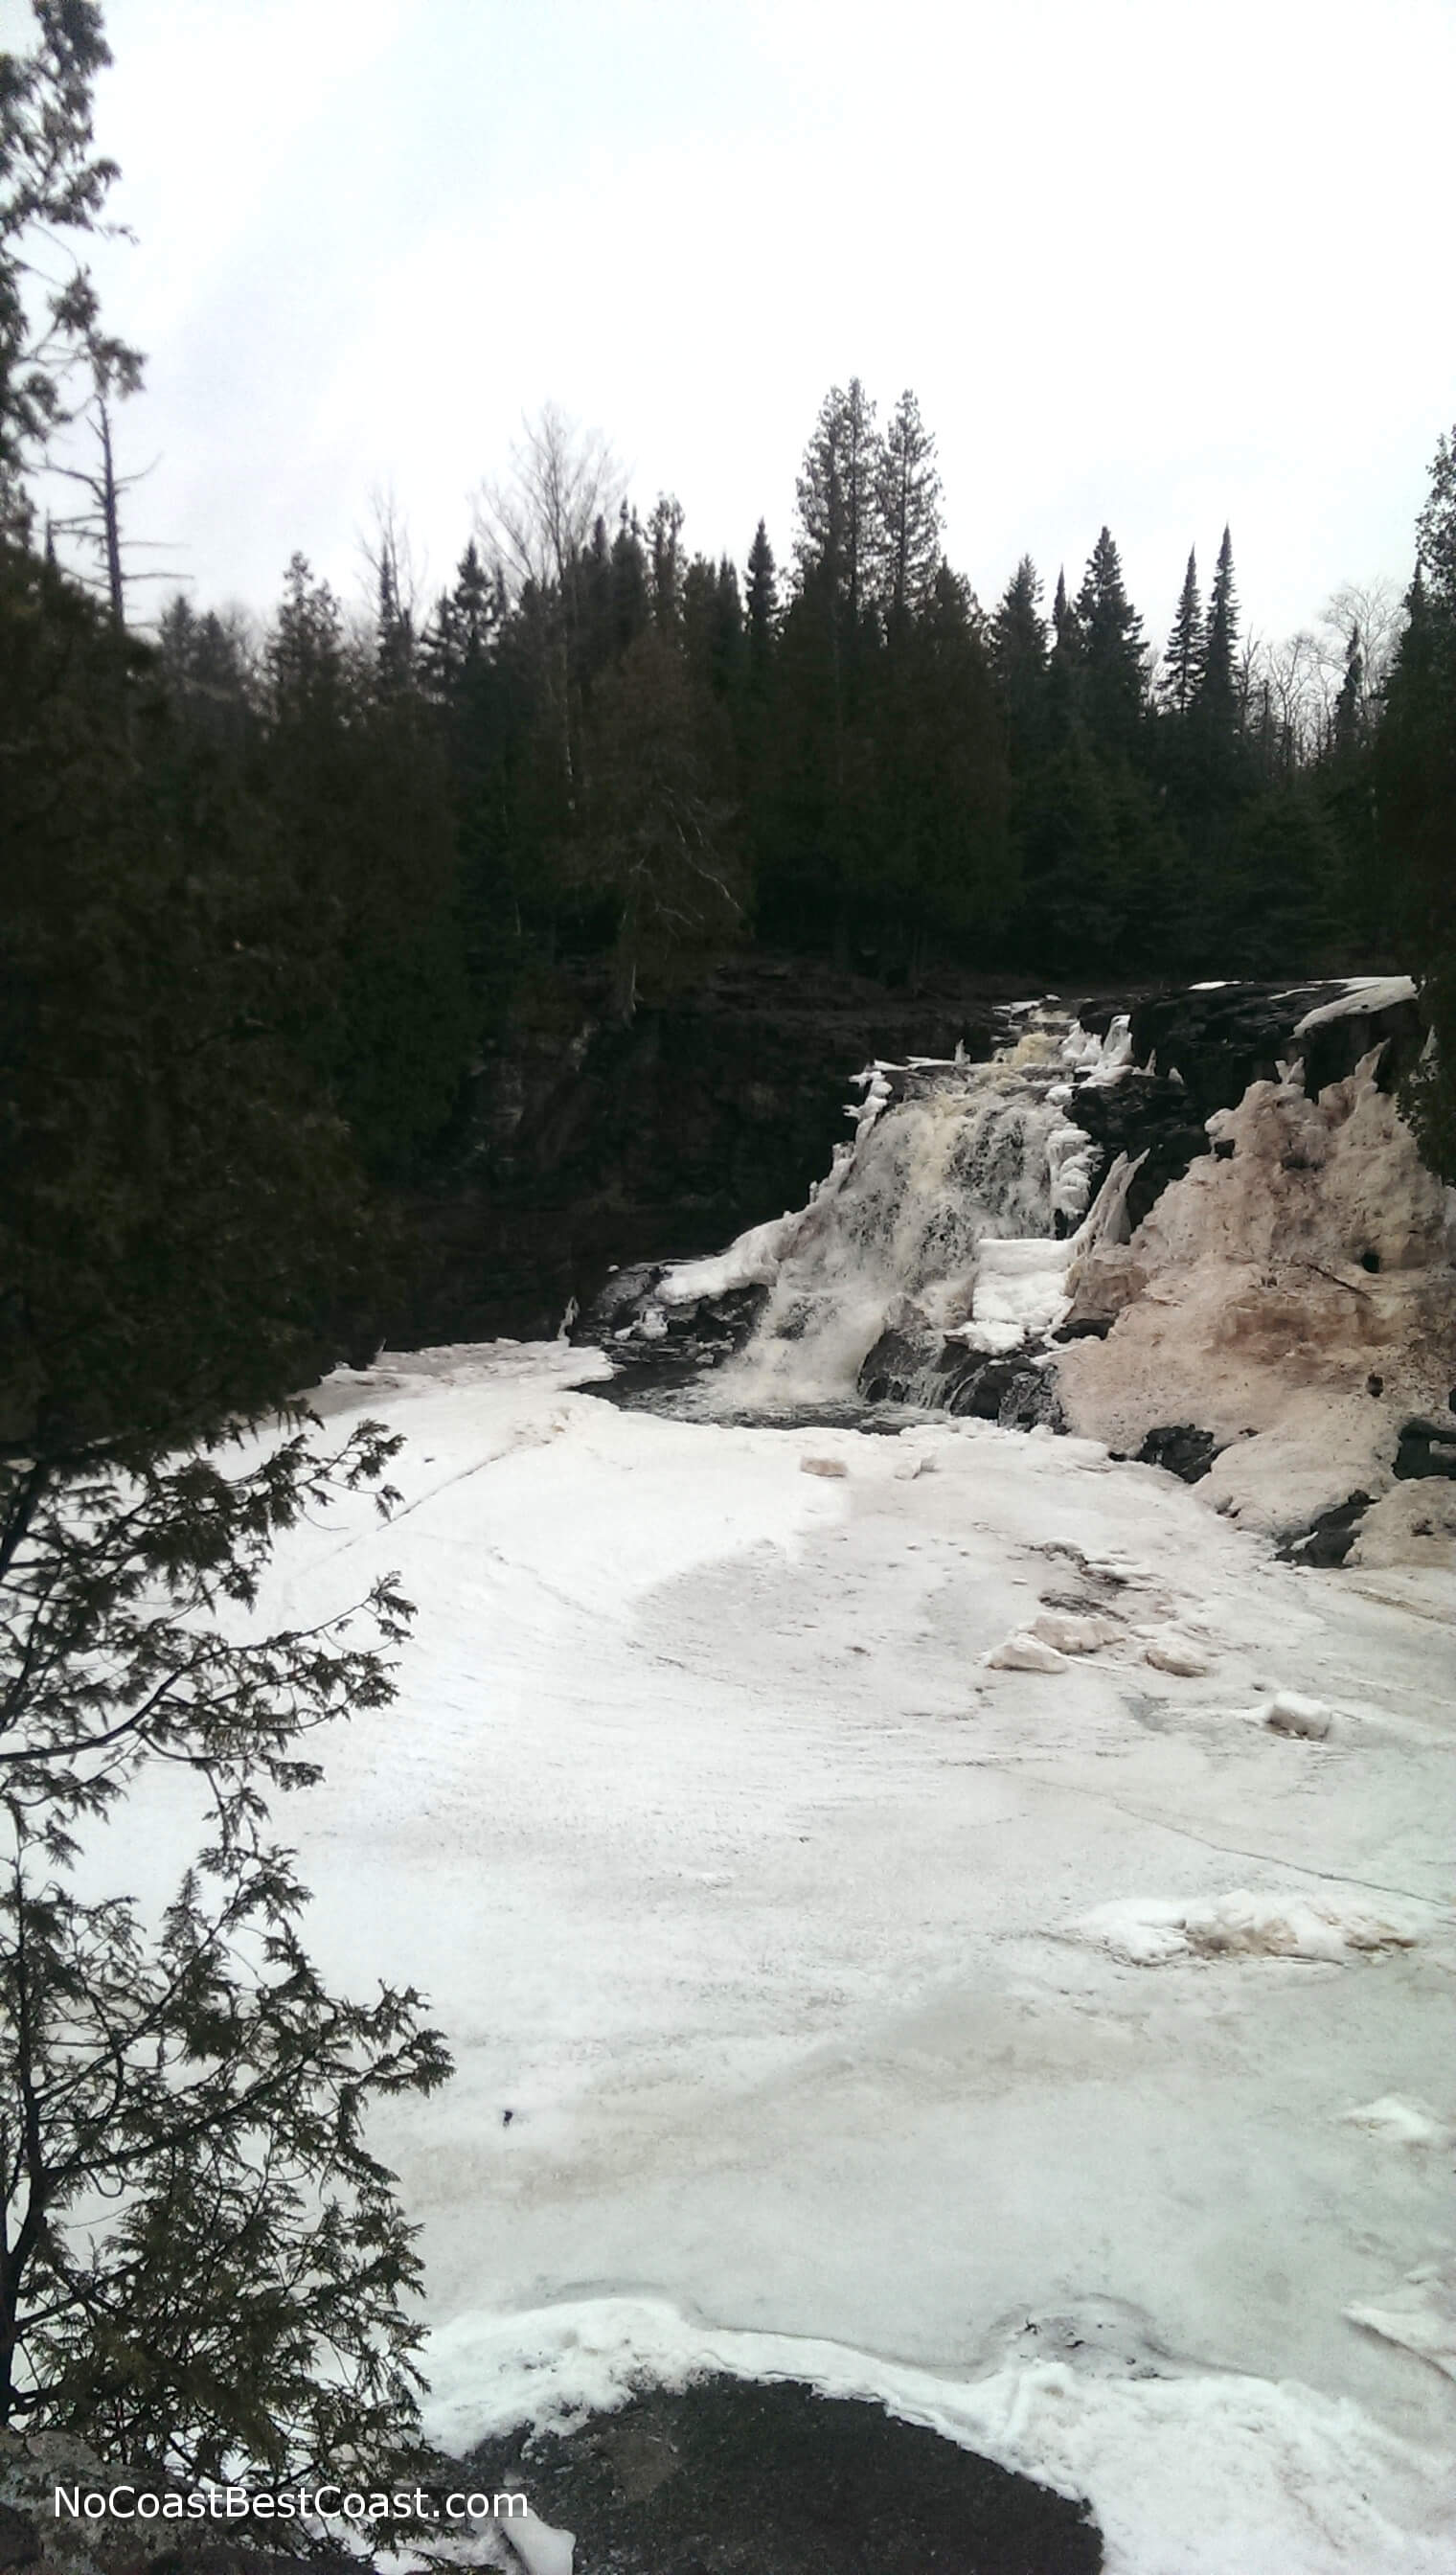 Viewing the frozen waterfall from the trail